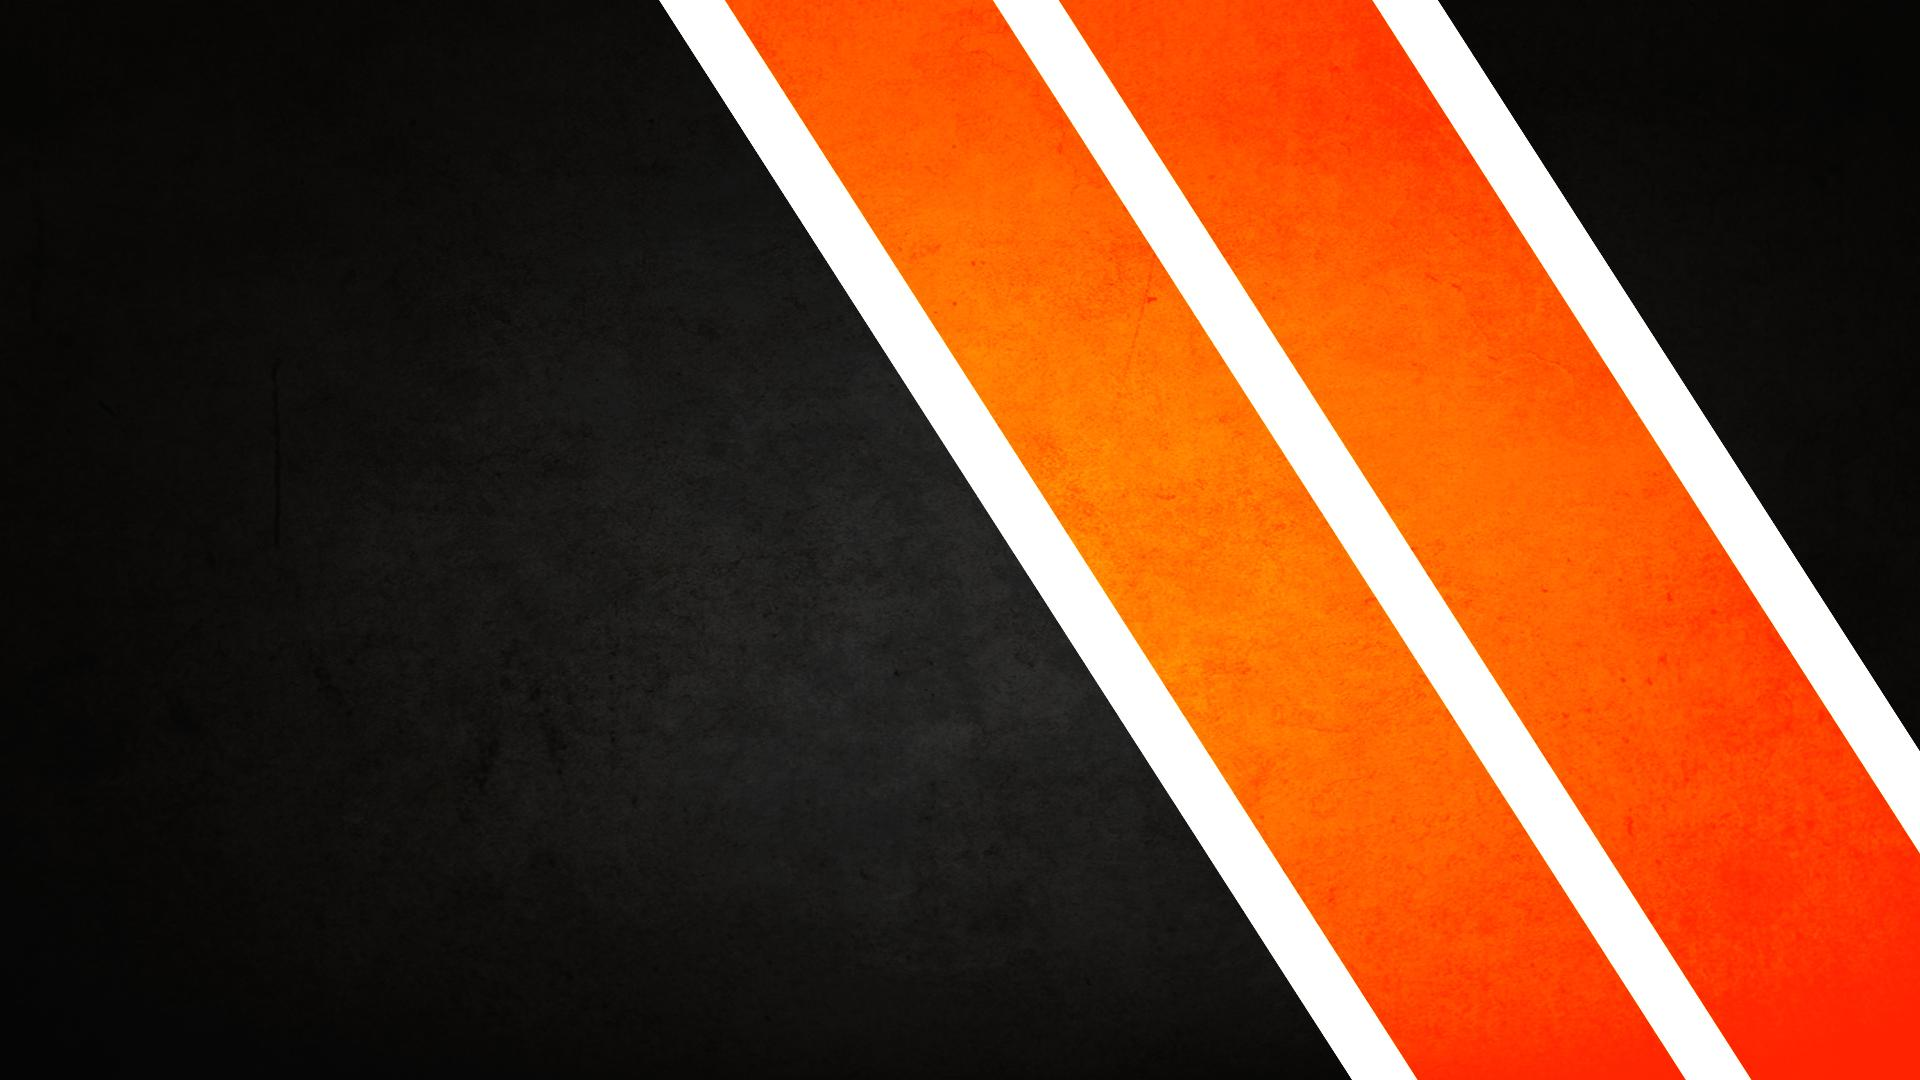 cool orange and black backgrounds 1920x1080